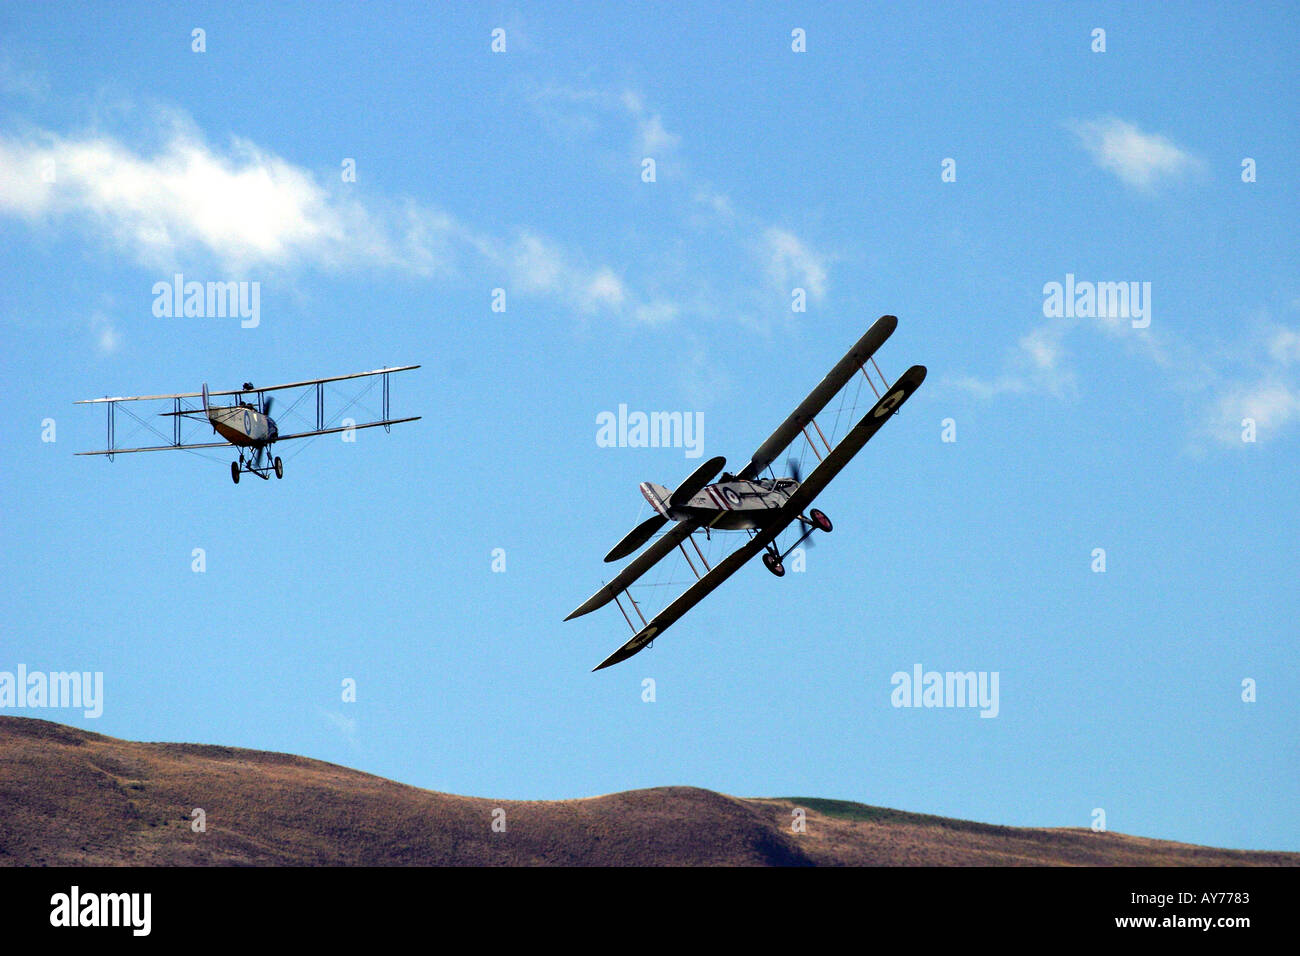 Avro 504k WWI bomber and Bristol F2 b fighter right - Stock Image